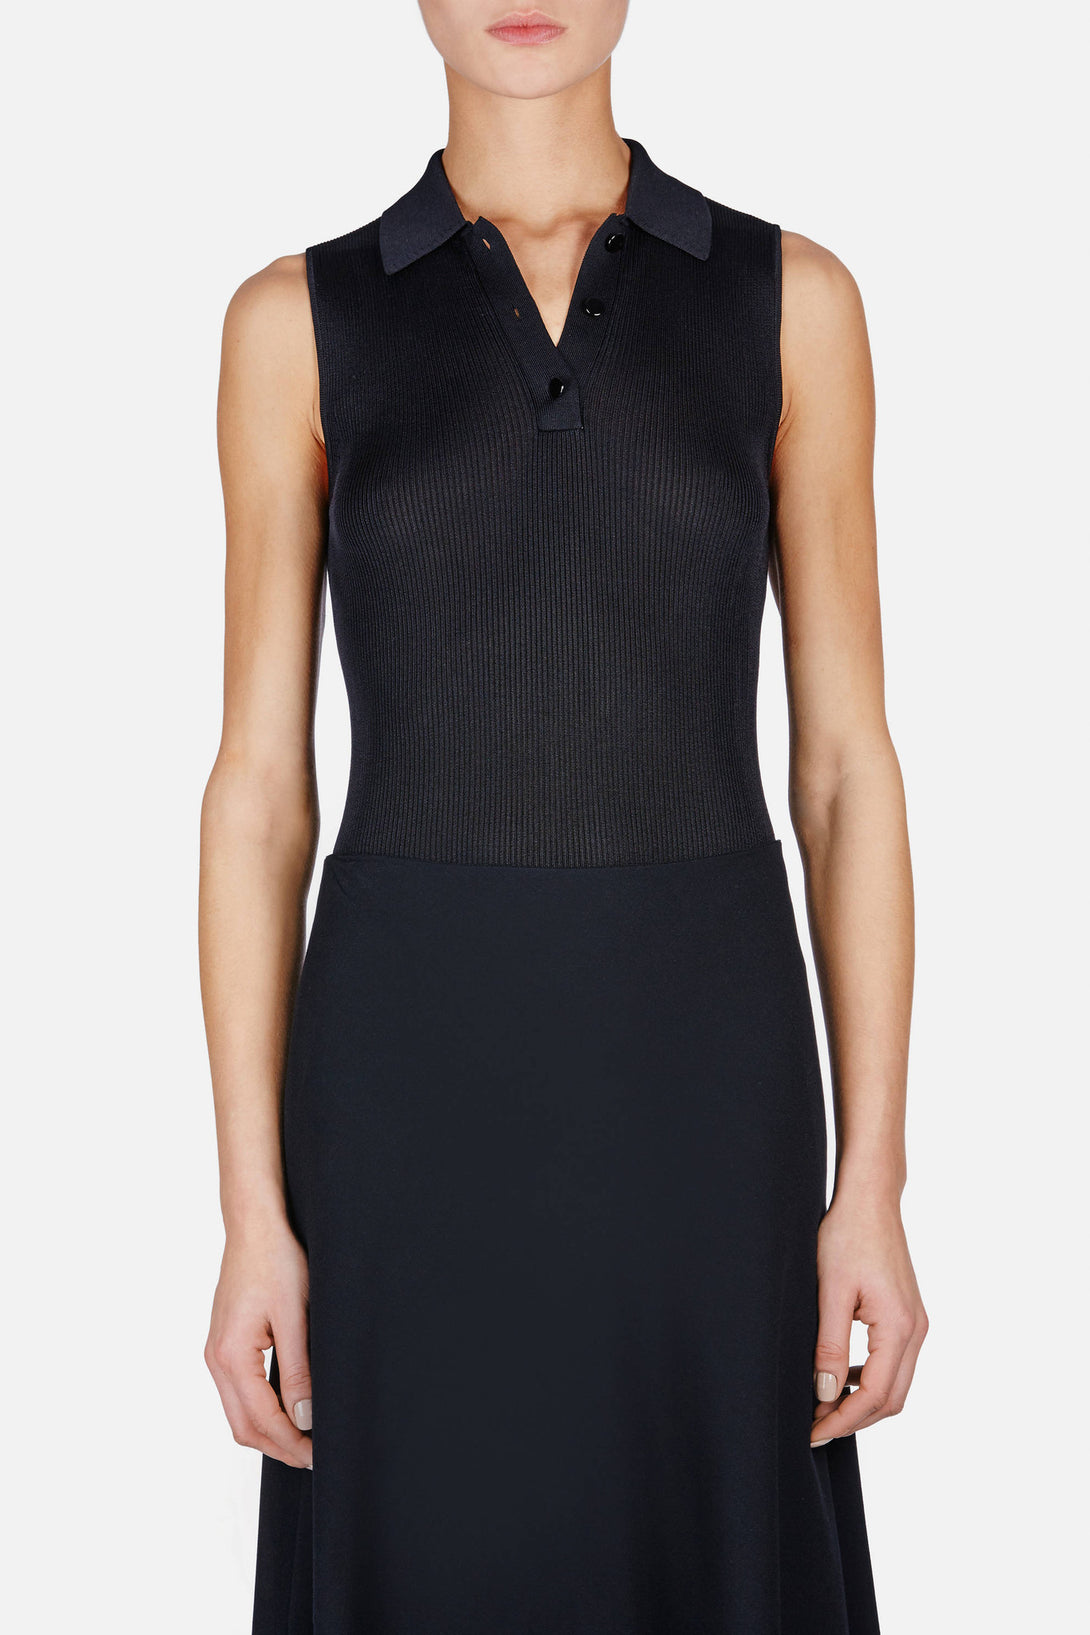 Silk Rib Knit Sleeveless Polo Top - Black